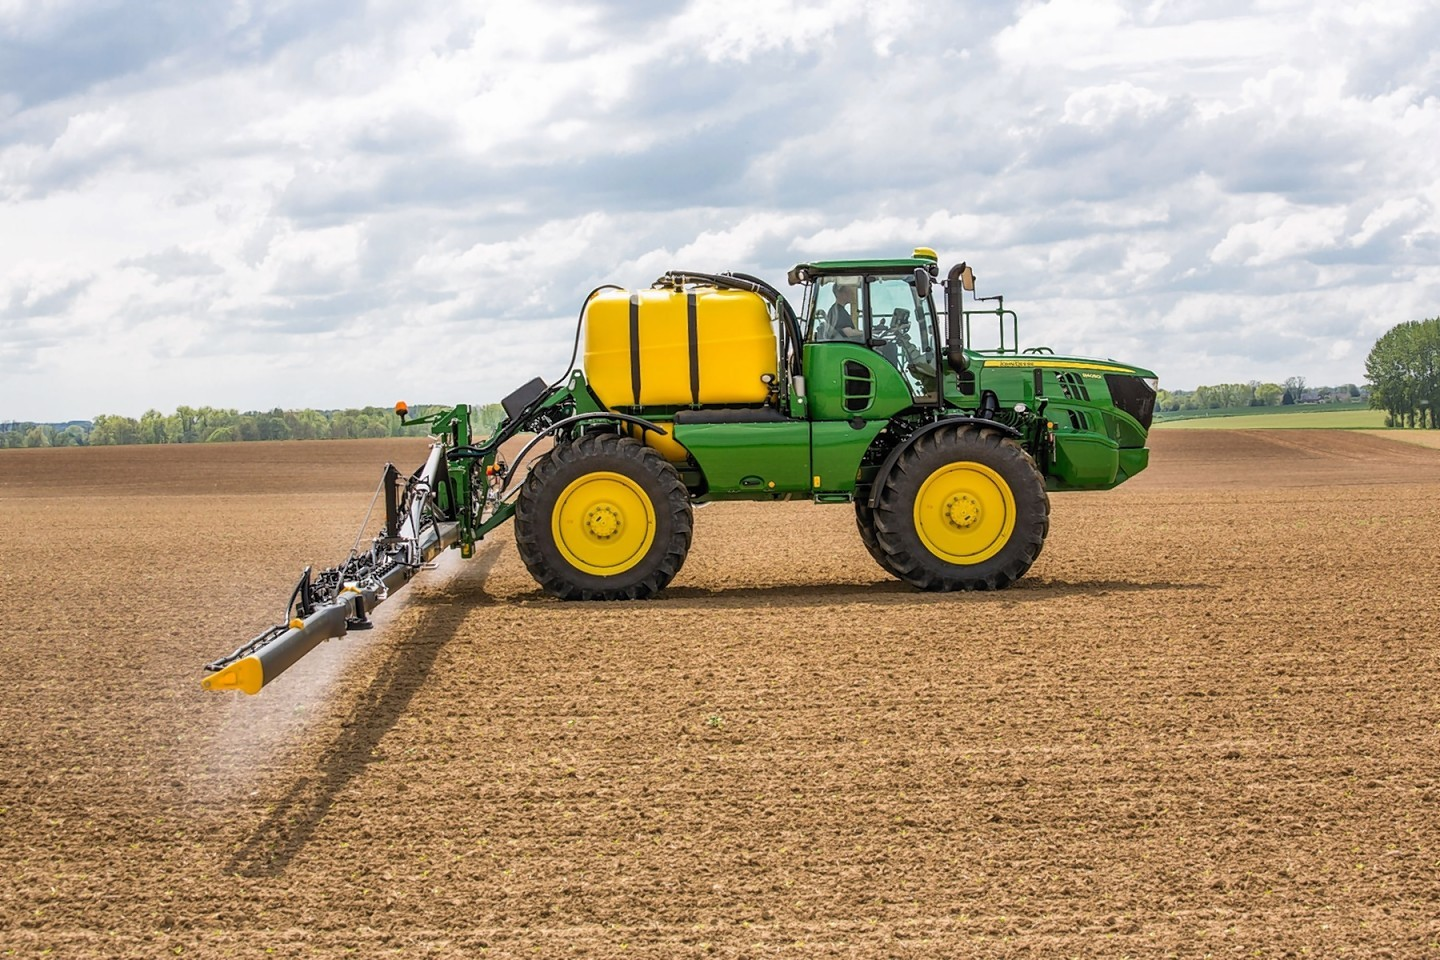 The John Deere R4050i with carbon fibre spray boom.